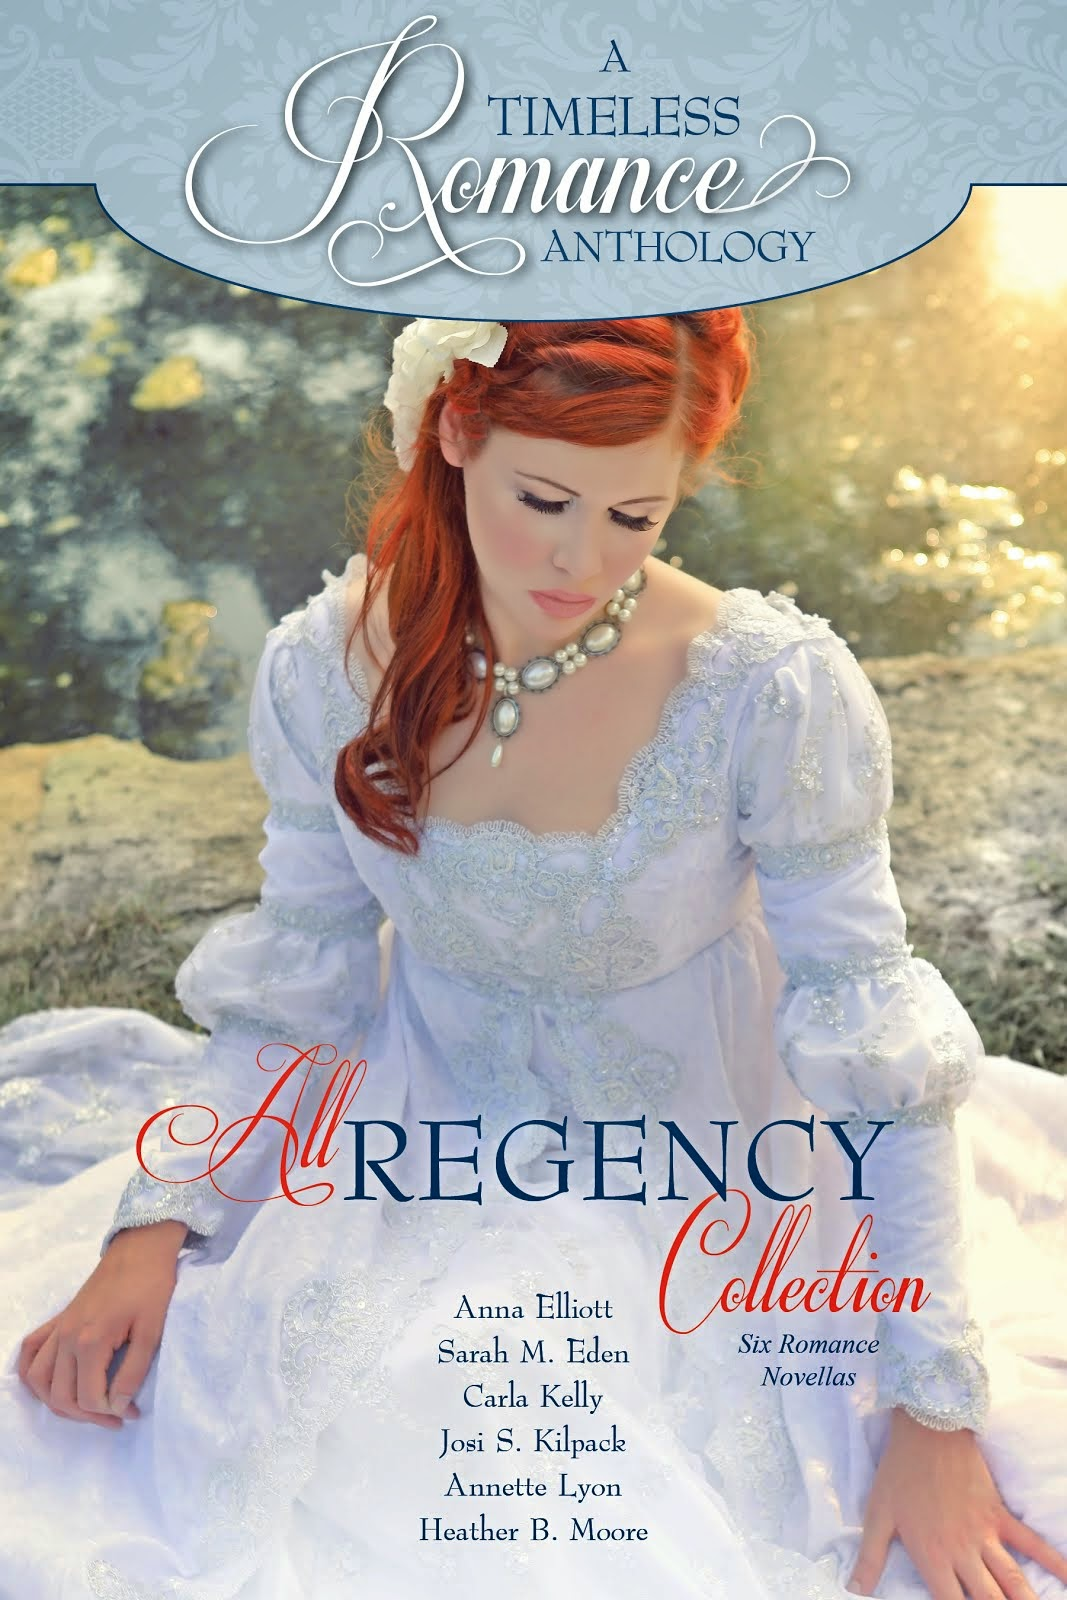 Released January 2015! All Regency Collection